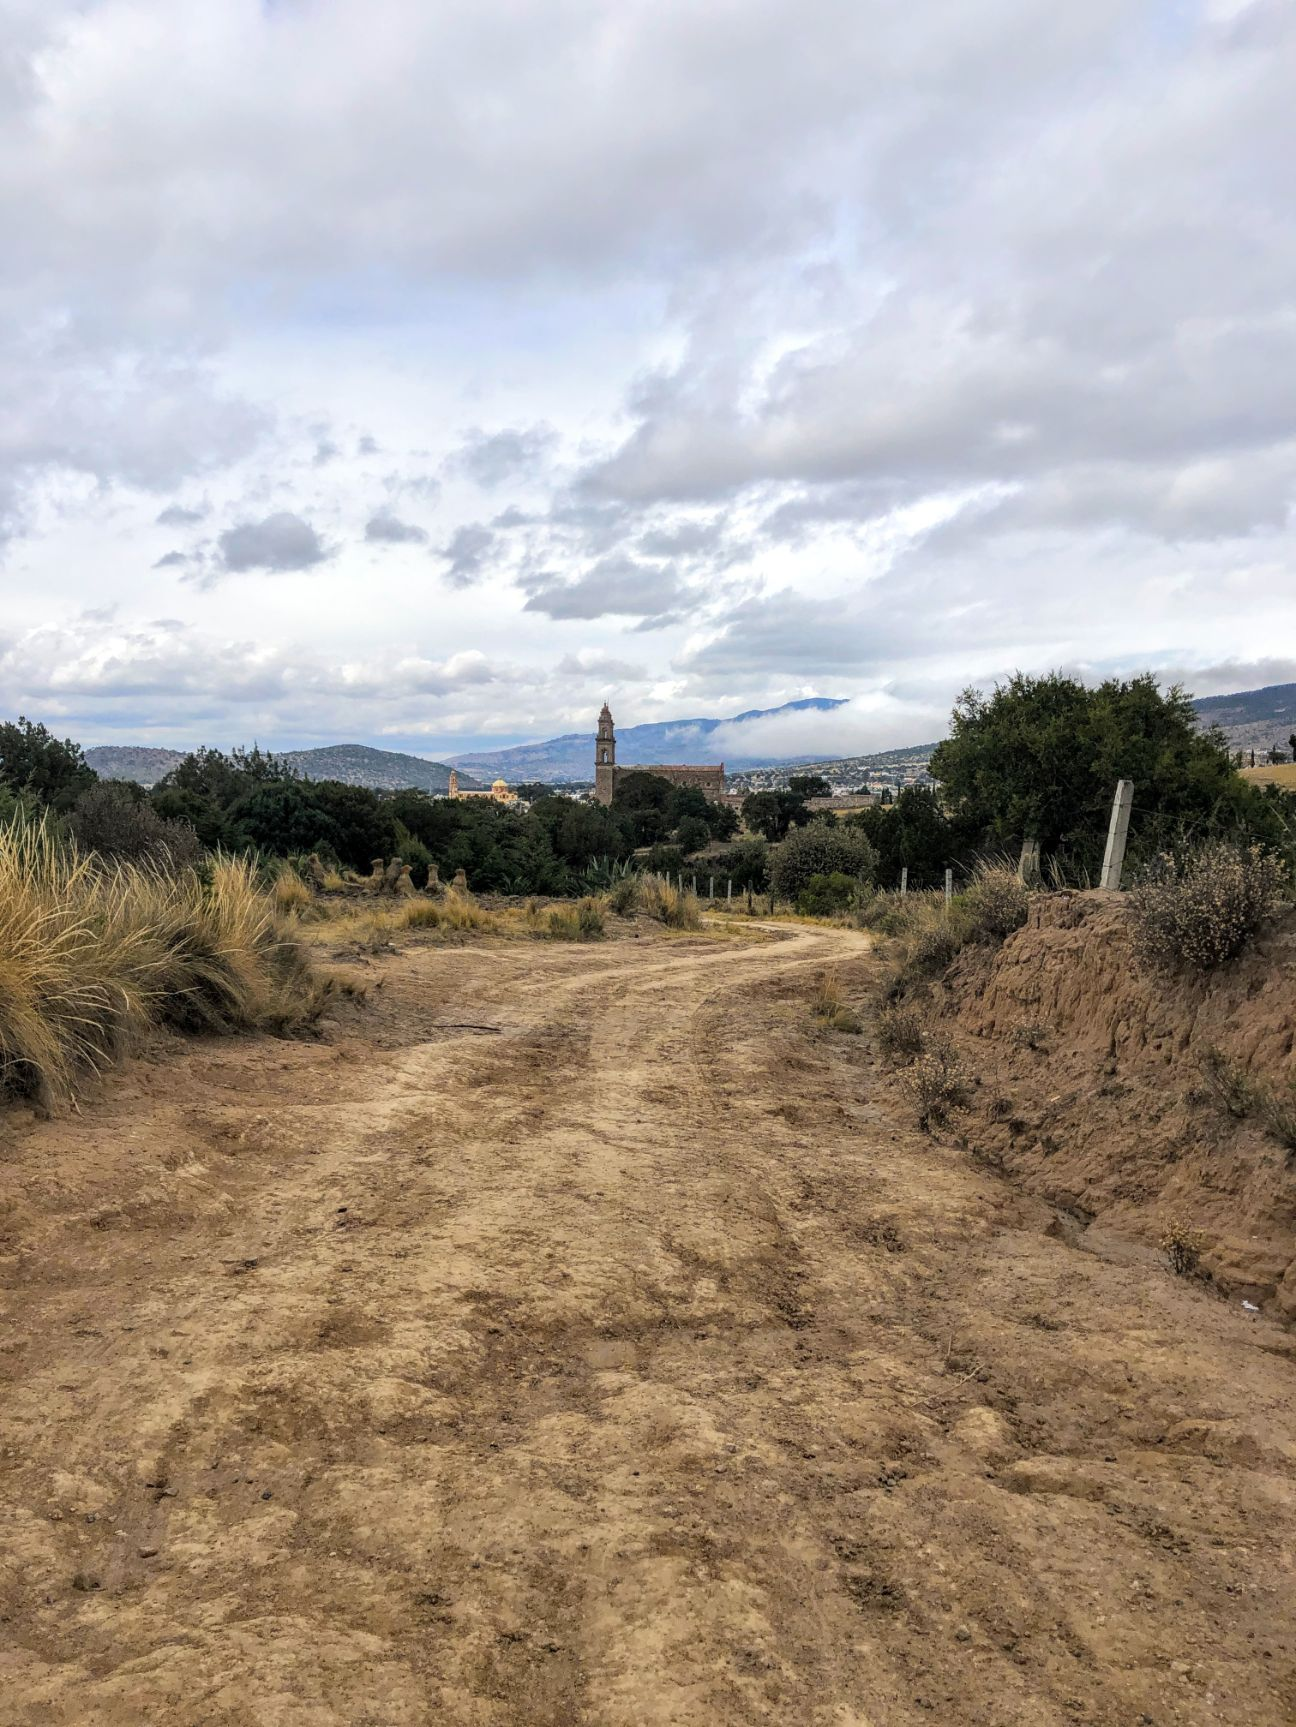 dirt road leading to the town of Tlaxco in the distance